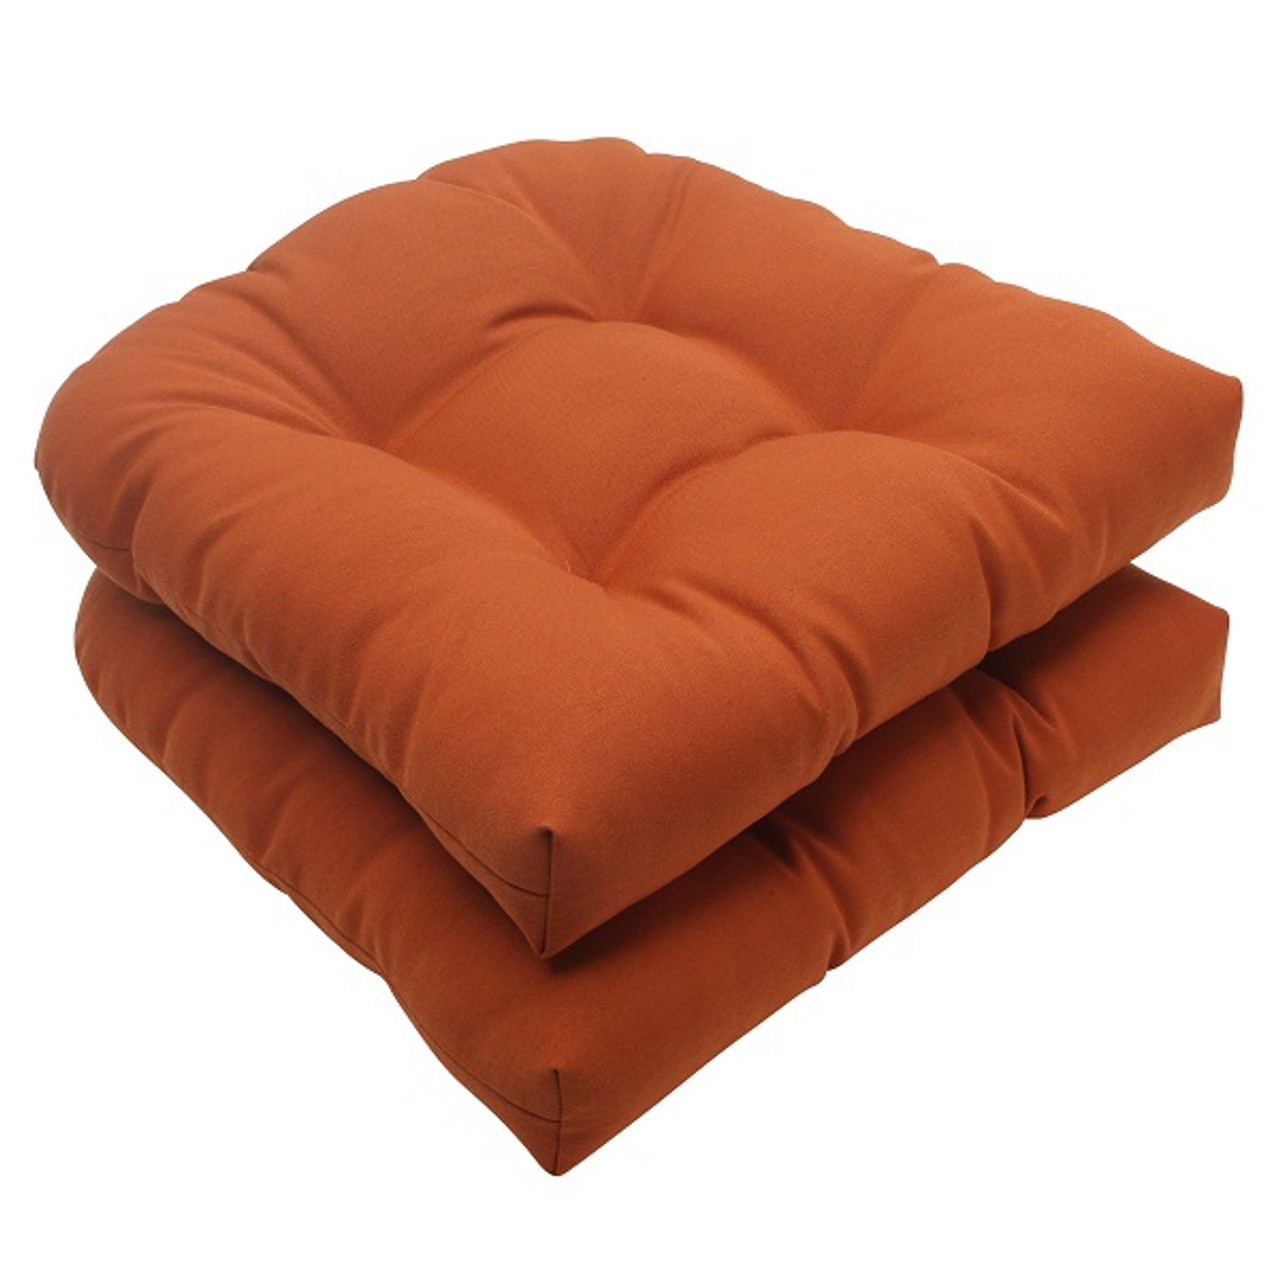 wicker chair cushions with ties blue and white set of 2 cinnamon burnt orange outdoor patio tufted